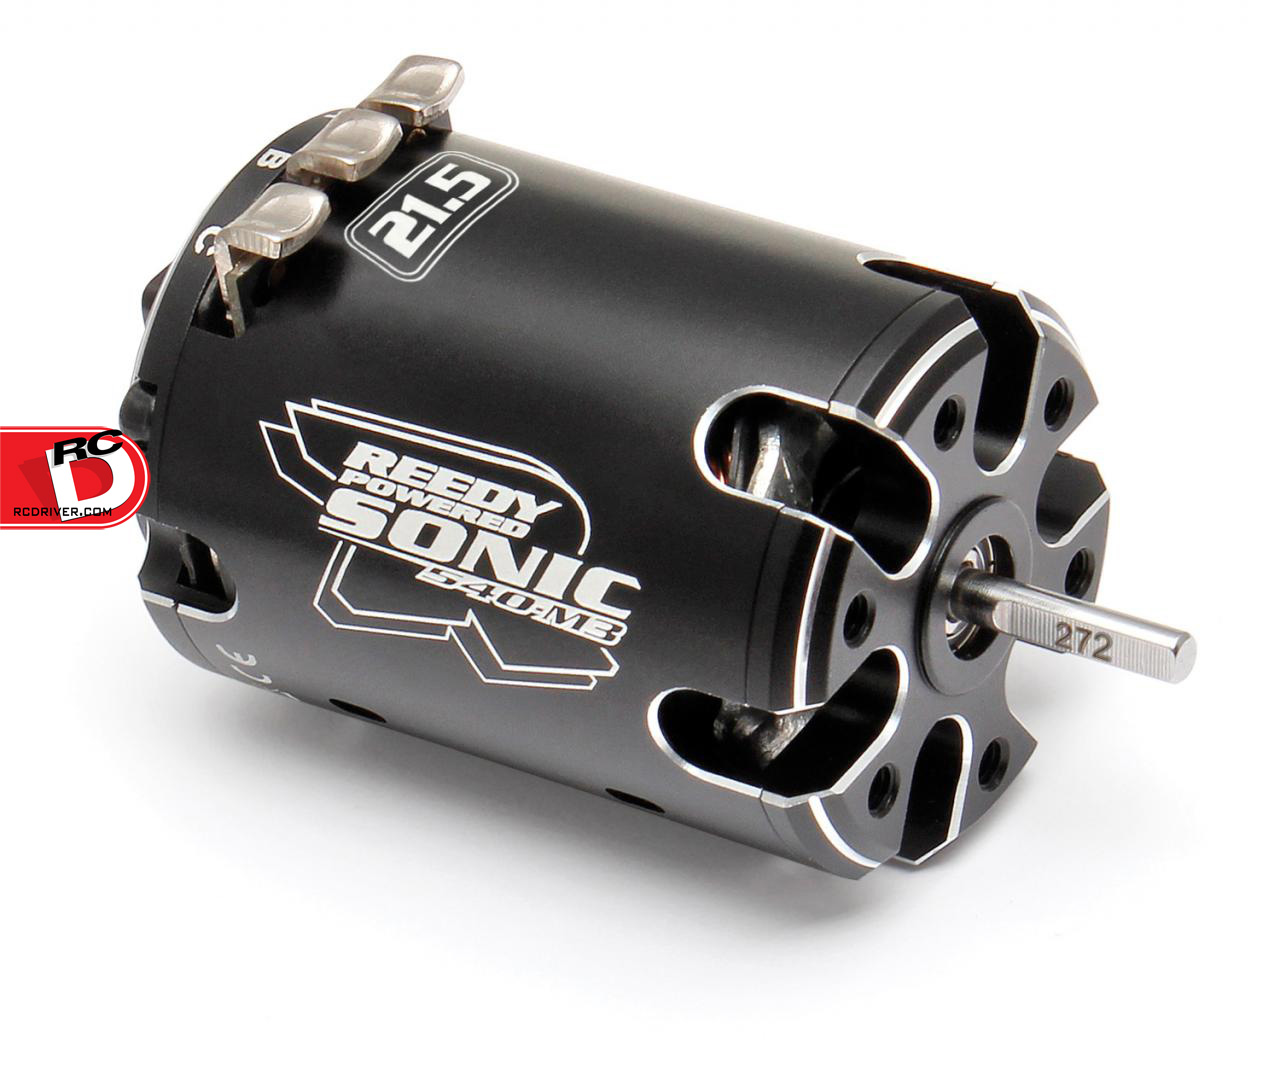 Reedy Sonic 540-M3 Short Stack 10.5 and 21.5 Motors